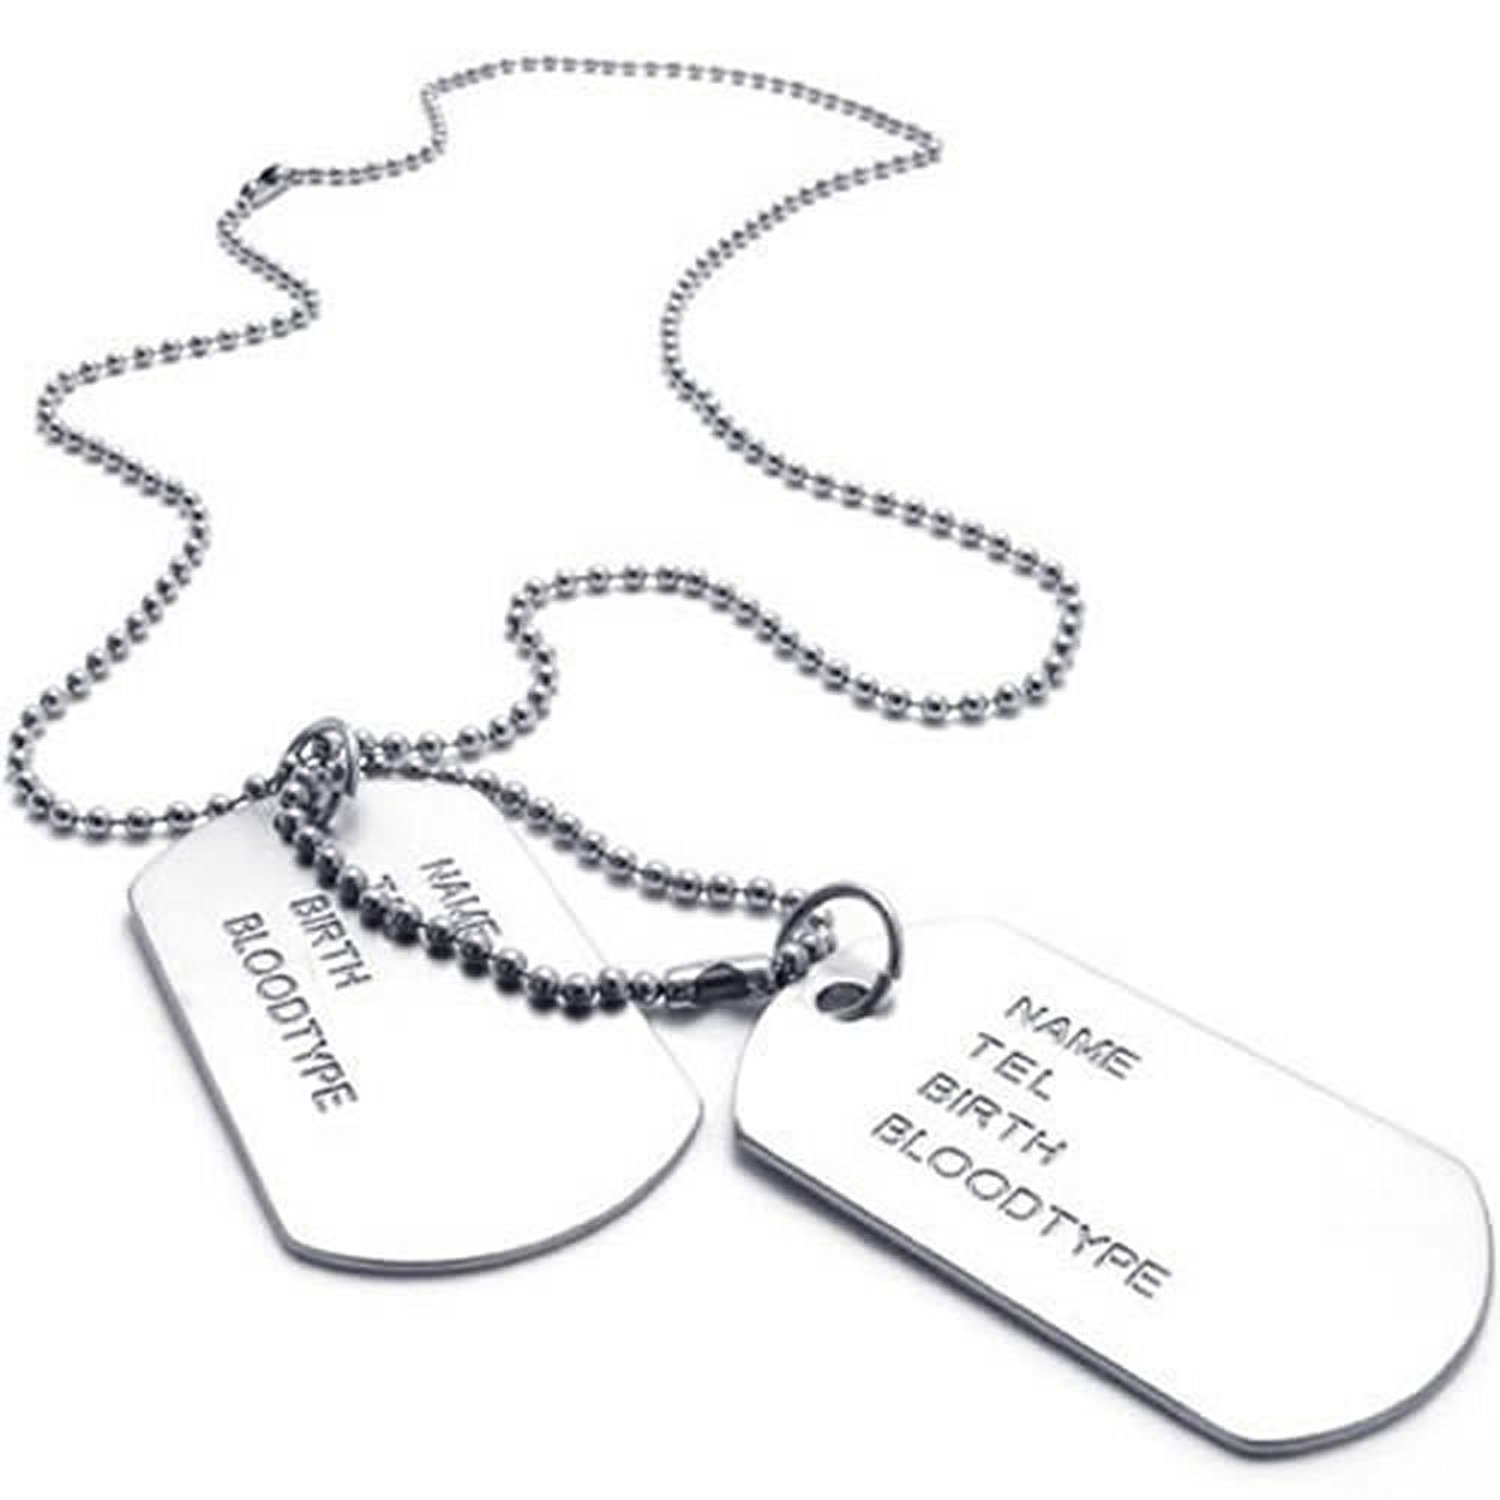 Aliexpress buy army style 2pcs dog tag pendant mens necklace aliexpress buy army style 2pcs dog tag pendant mens necklace chain silver from reliable tag pendant suppliers on jonline24h official store aloadofball Gallery